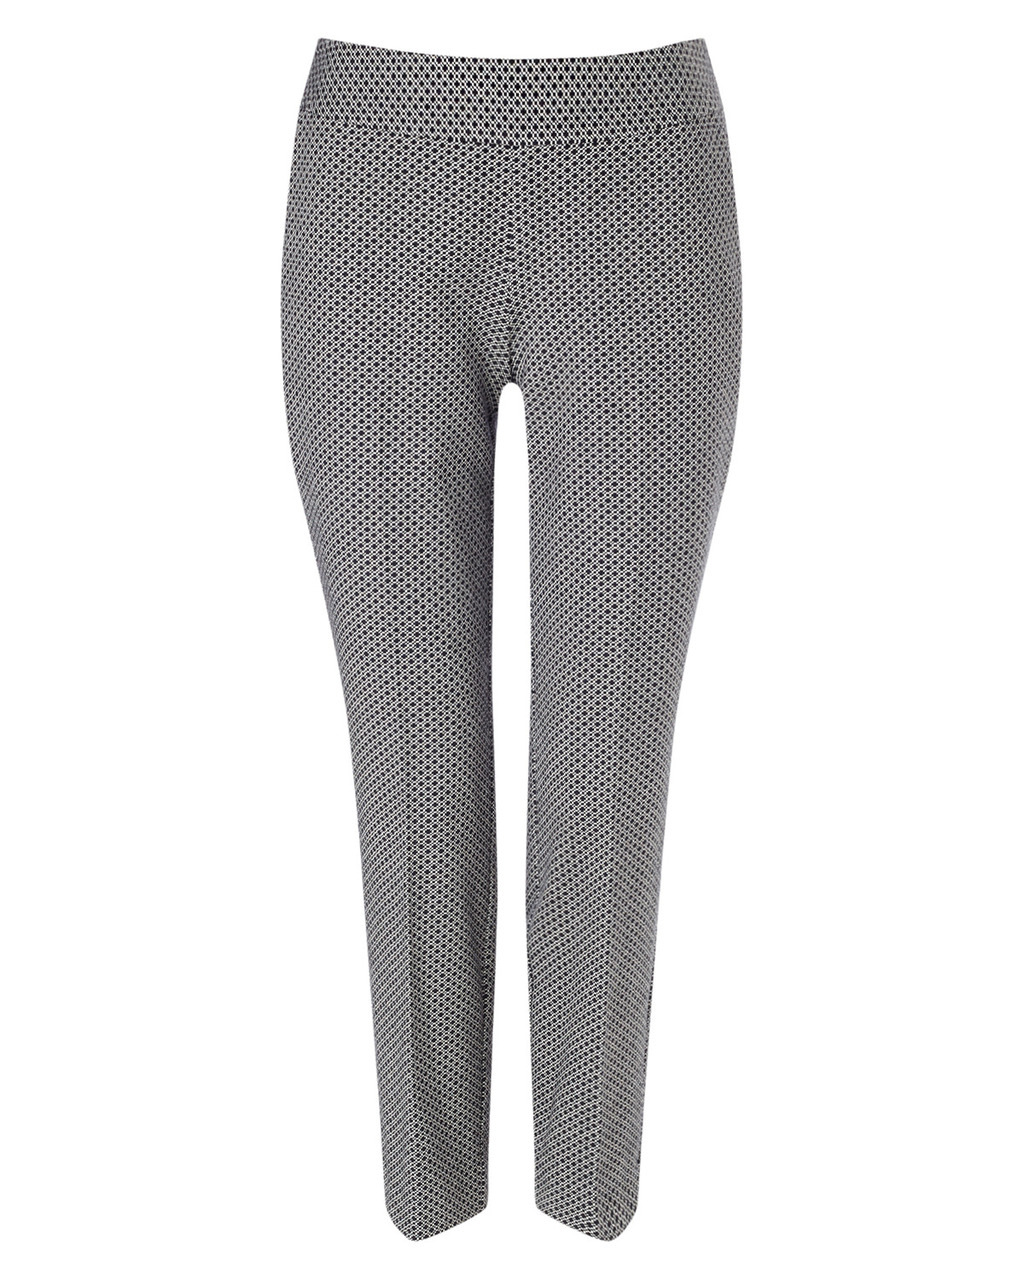 Fiona Mini Geo Trouser - style: capri; waist: mid/regular rise; secondary colour: light grey; predominant colour: black; length: ankle length; fit: slim leg; pattern type: fabric; pattern: patterned/print; texture group: woven light midweight; occasions: creative work; pattern size: light/subtle (bottom); season: a/w 2015; wardrobe: highlight